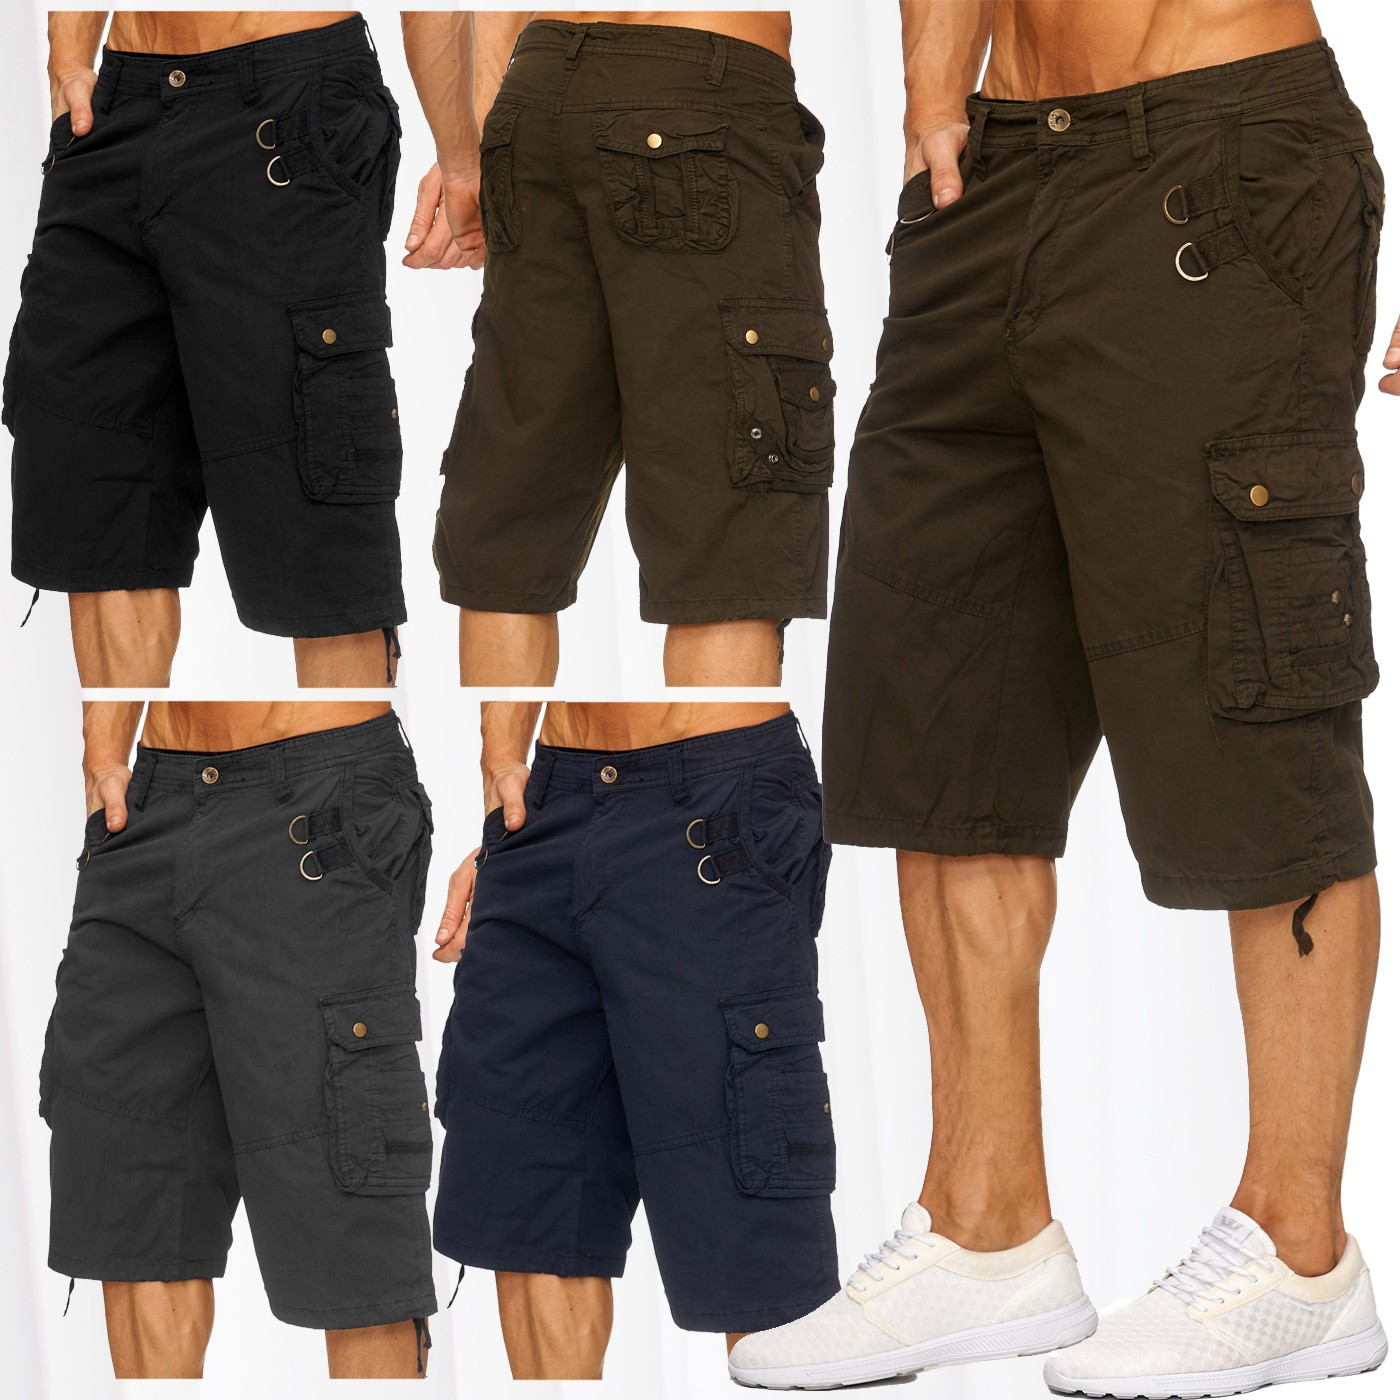 herren cargo capri shorts tasche 2017 summer jeans bermuda kurze hose short hot ebay. Black Bedroom Furniture Sets. Home Design Ideas